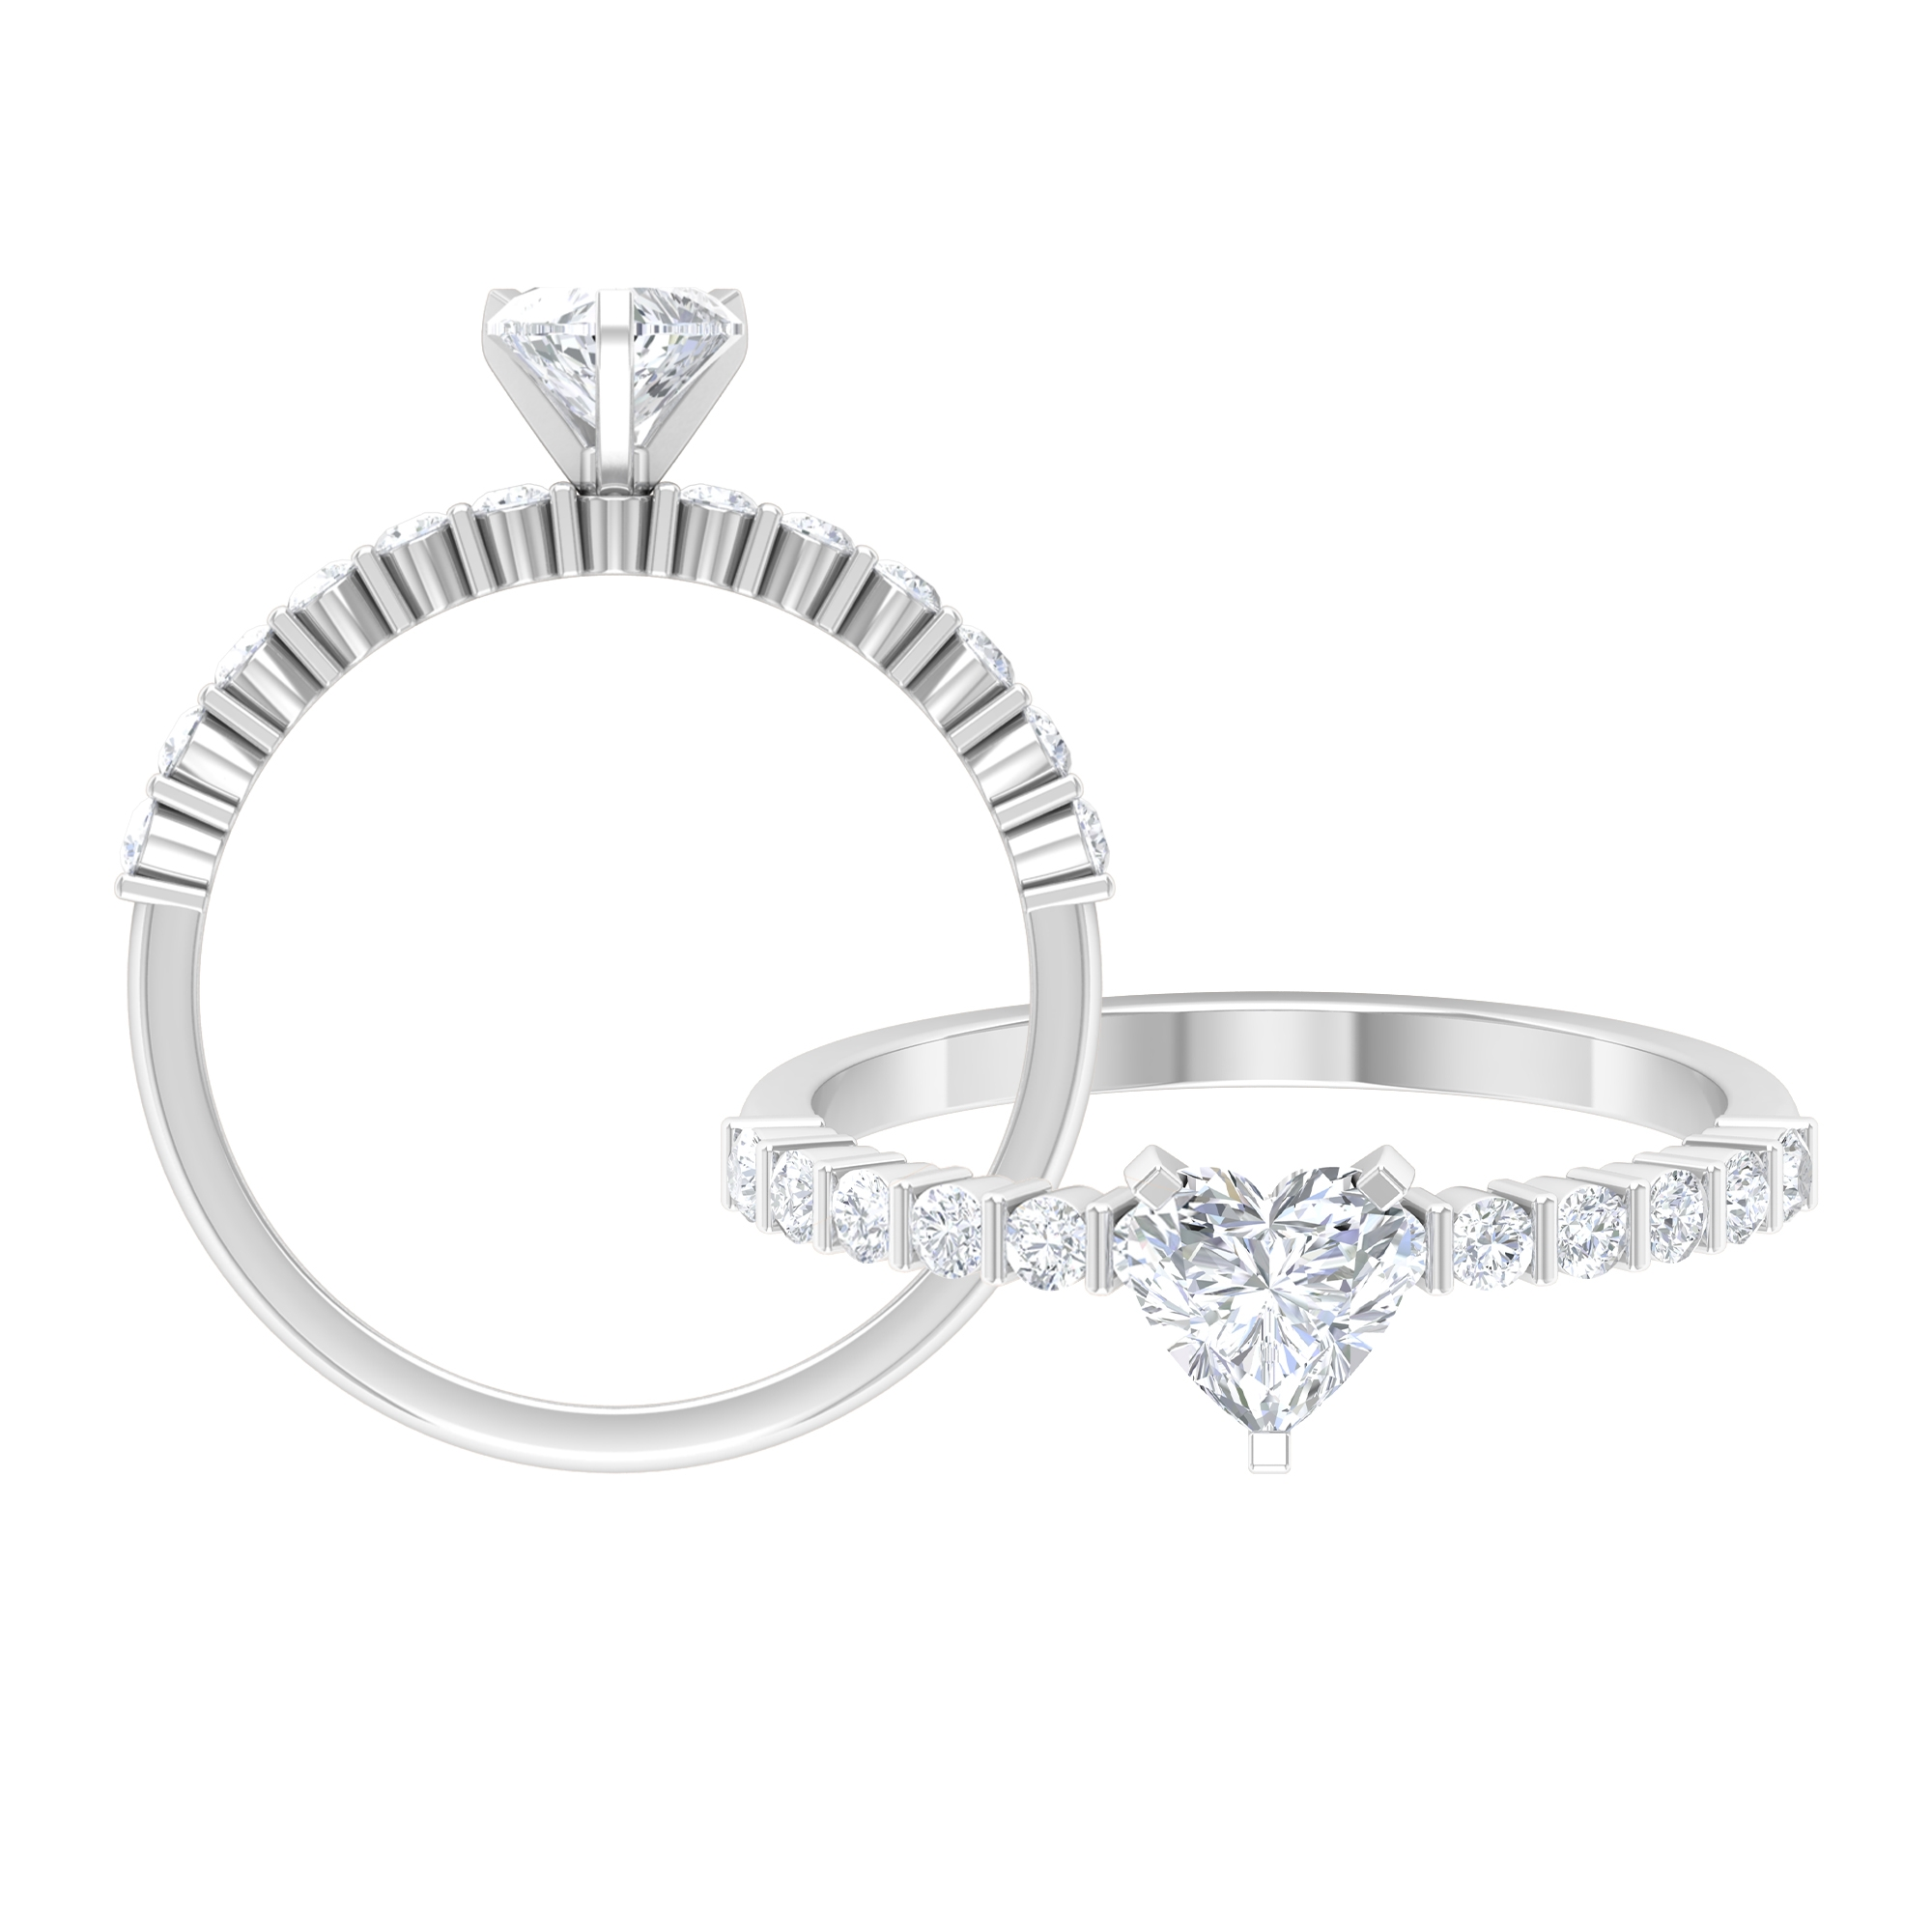 3/4 CT Heart Shape Diamond Solitaire Ring in 3 Prong Peg Head Setting with Channel Set Side Stones